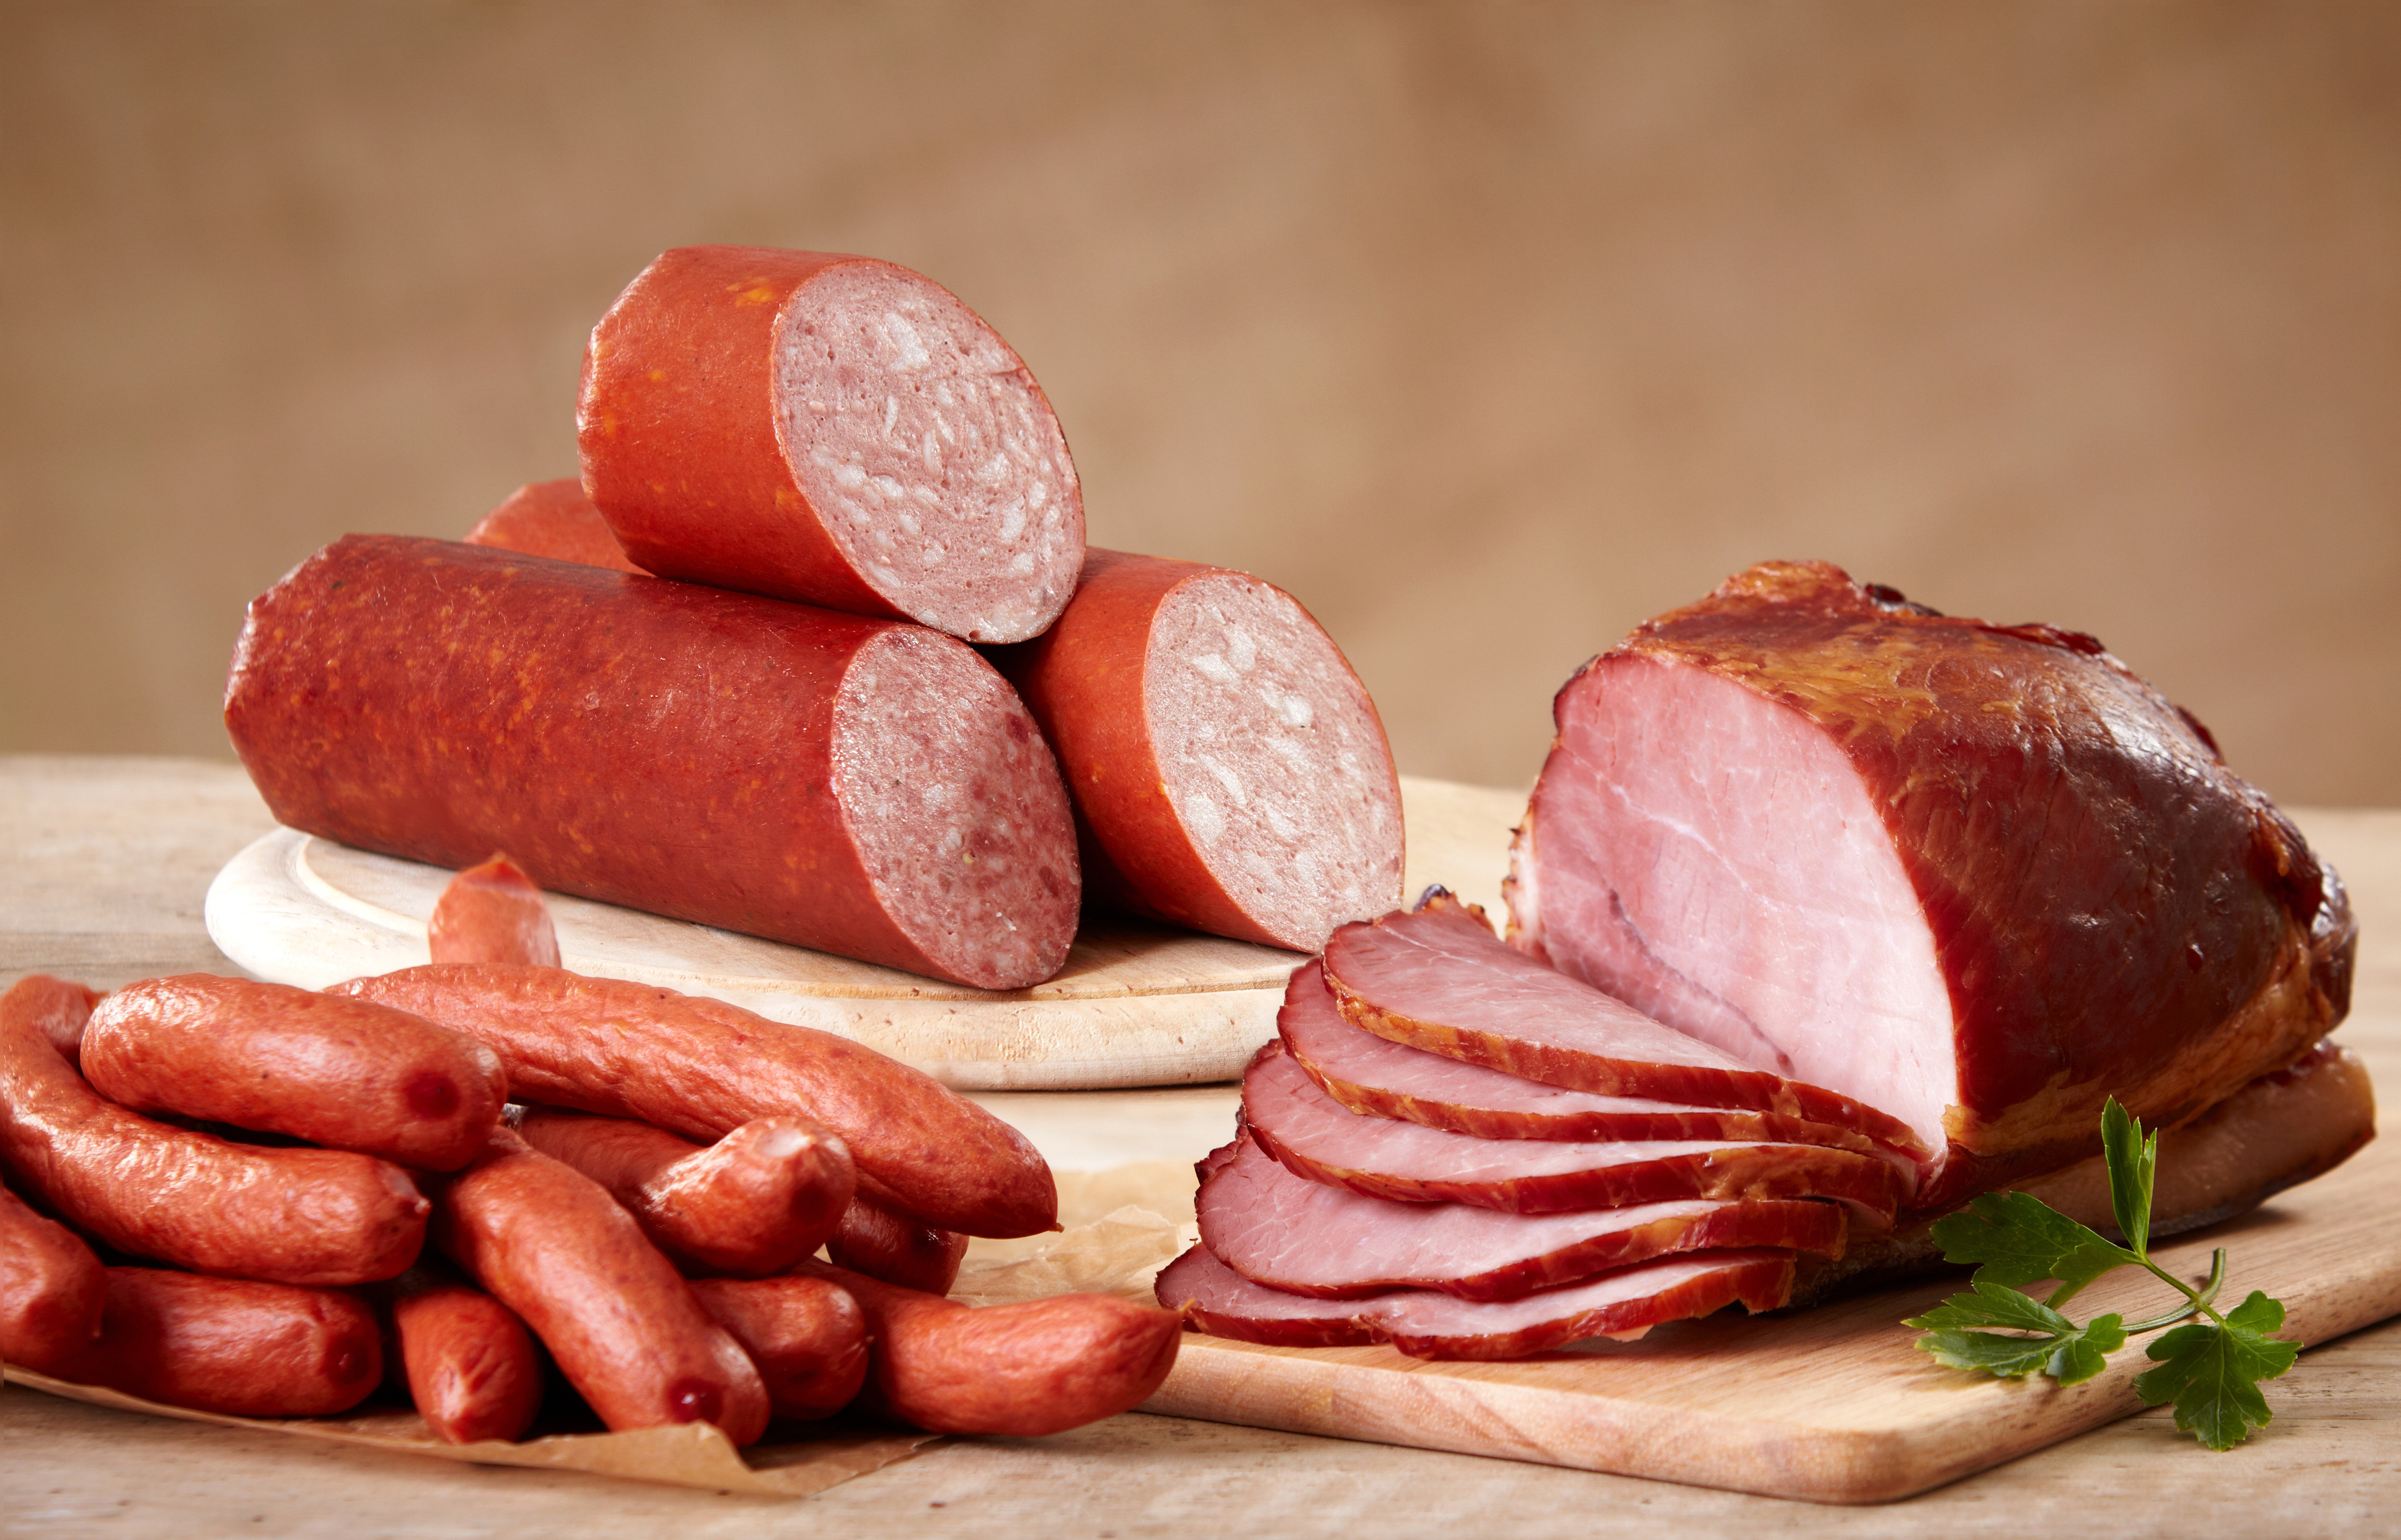 Images Sausage Ham Vienna sausage Food Meat products 5582x3581 5582x3581